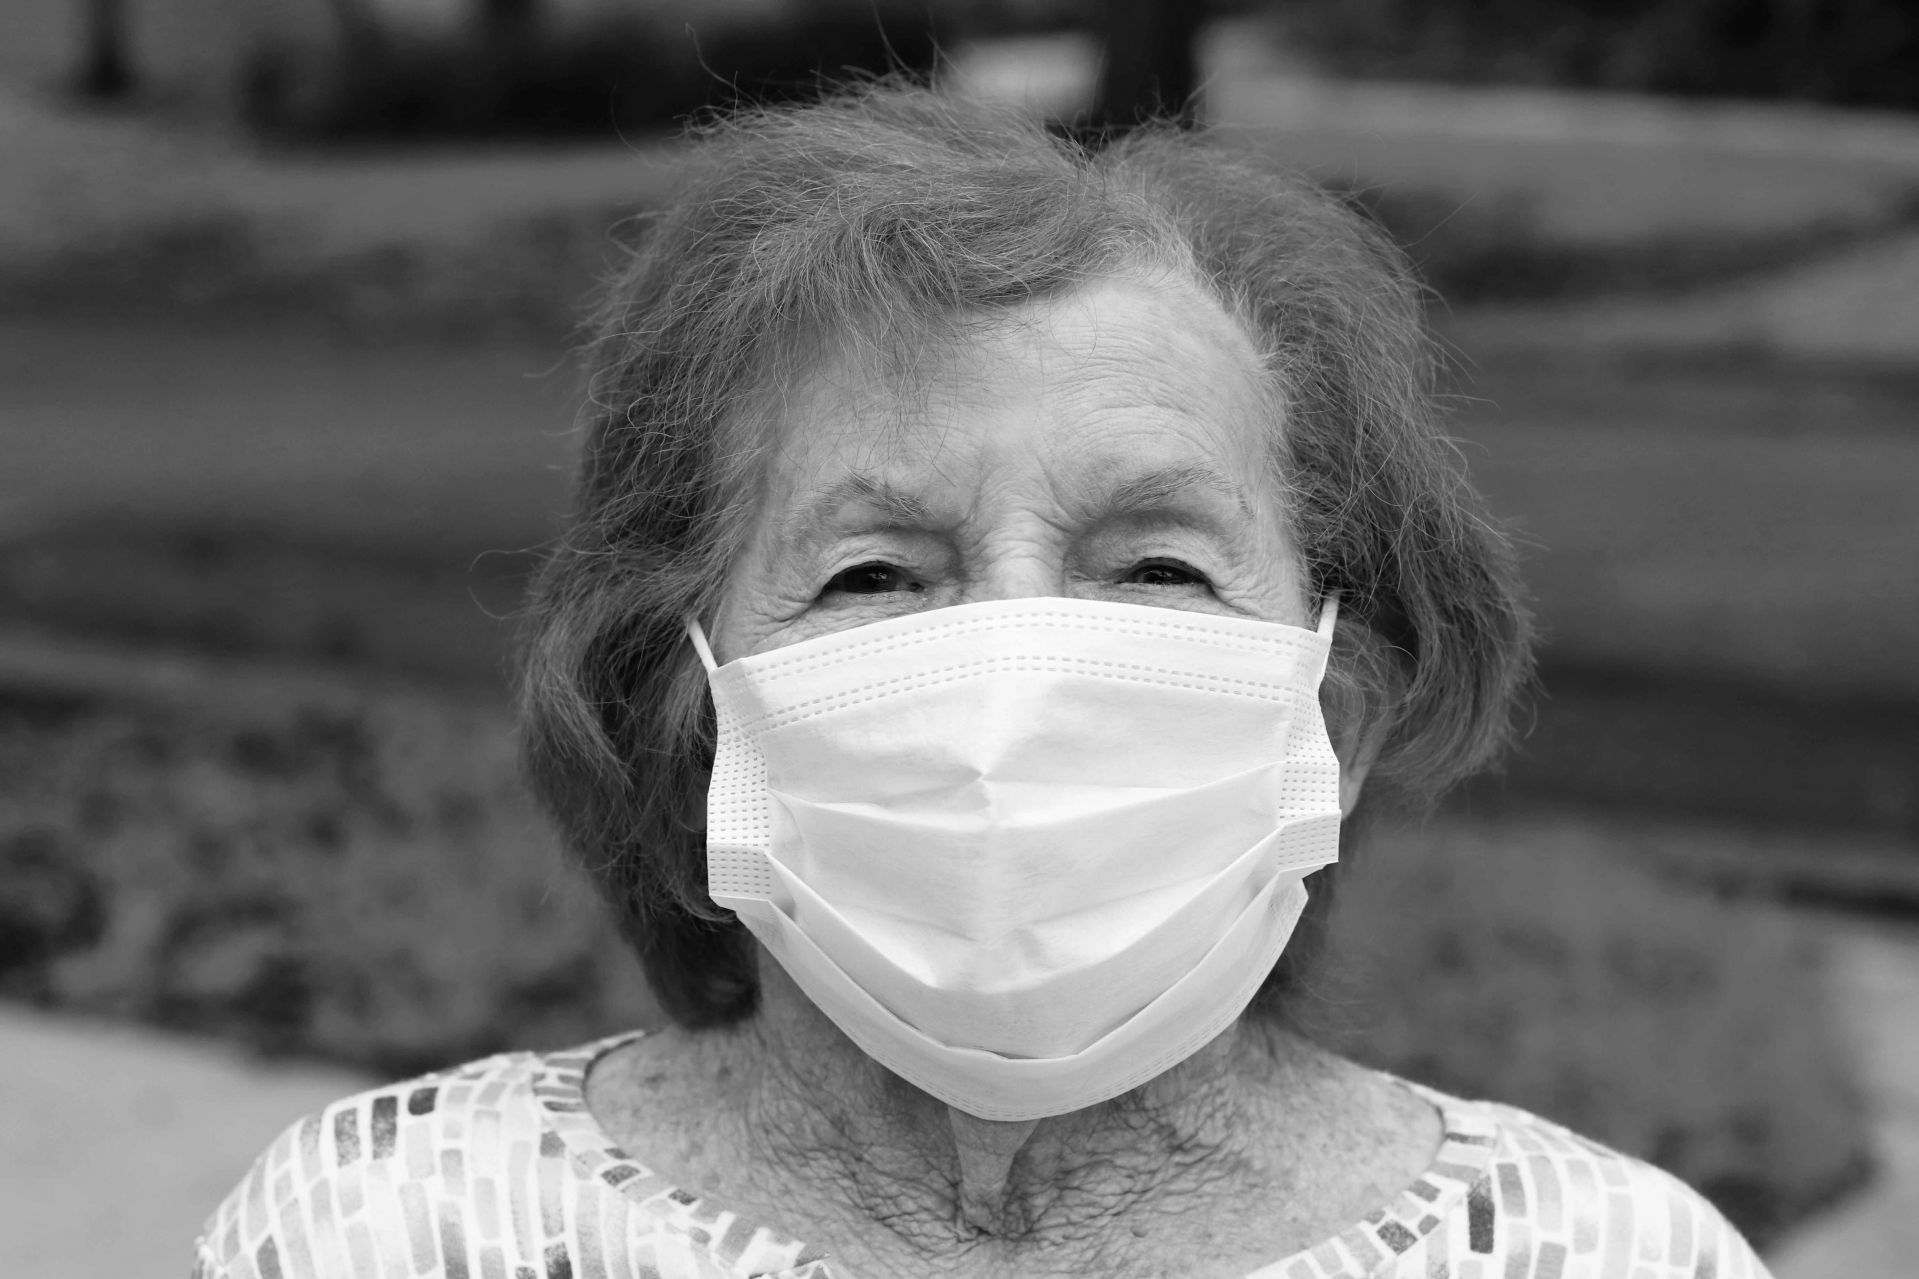 Wearing her mask, Pauline Petrin, age 92, sits outside after a walk around her neighborhood in Plantation, Fla., on April 17, 2020.